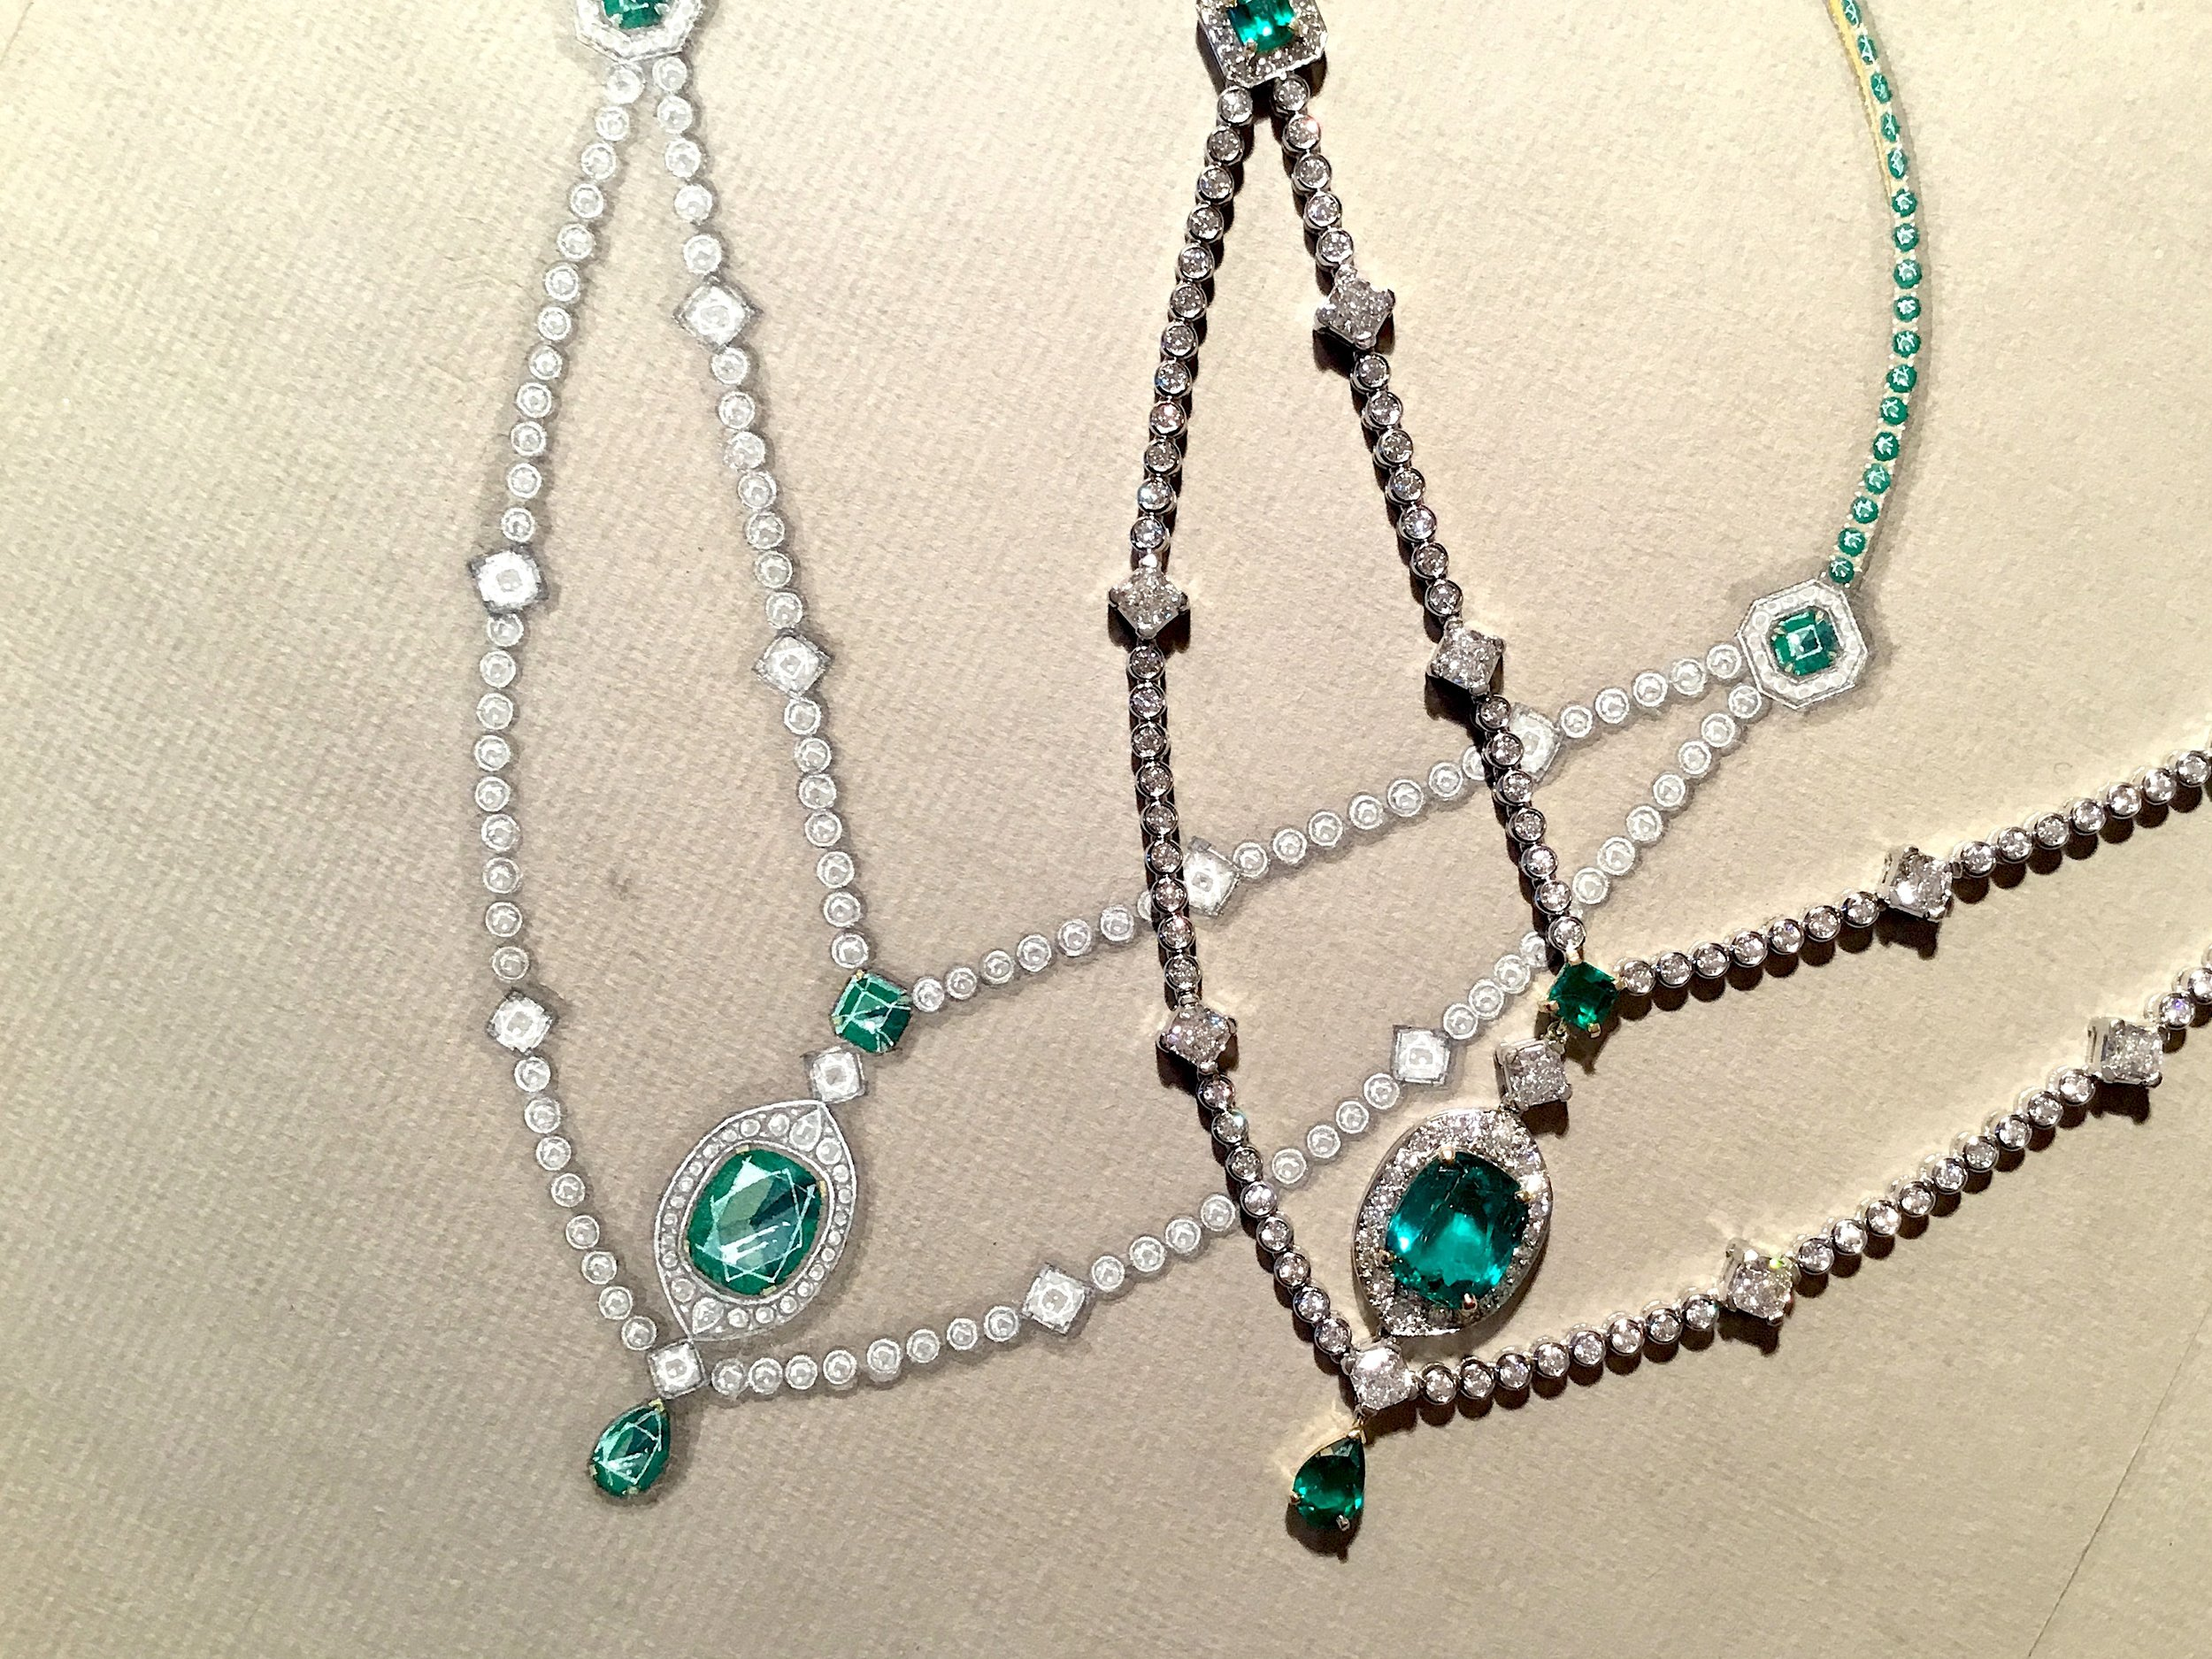 An emerald and diamond necklace, pictured next to the original working drawing.